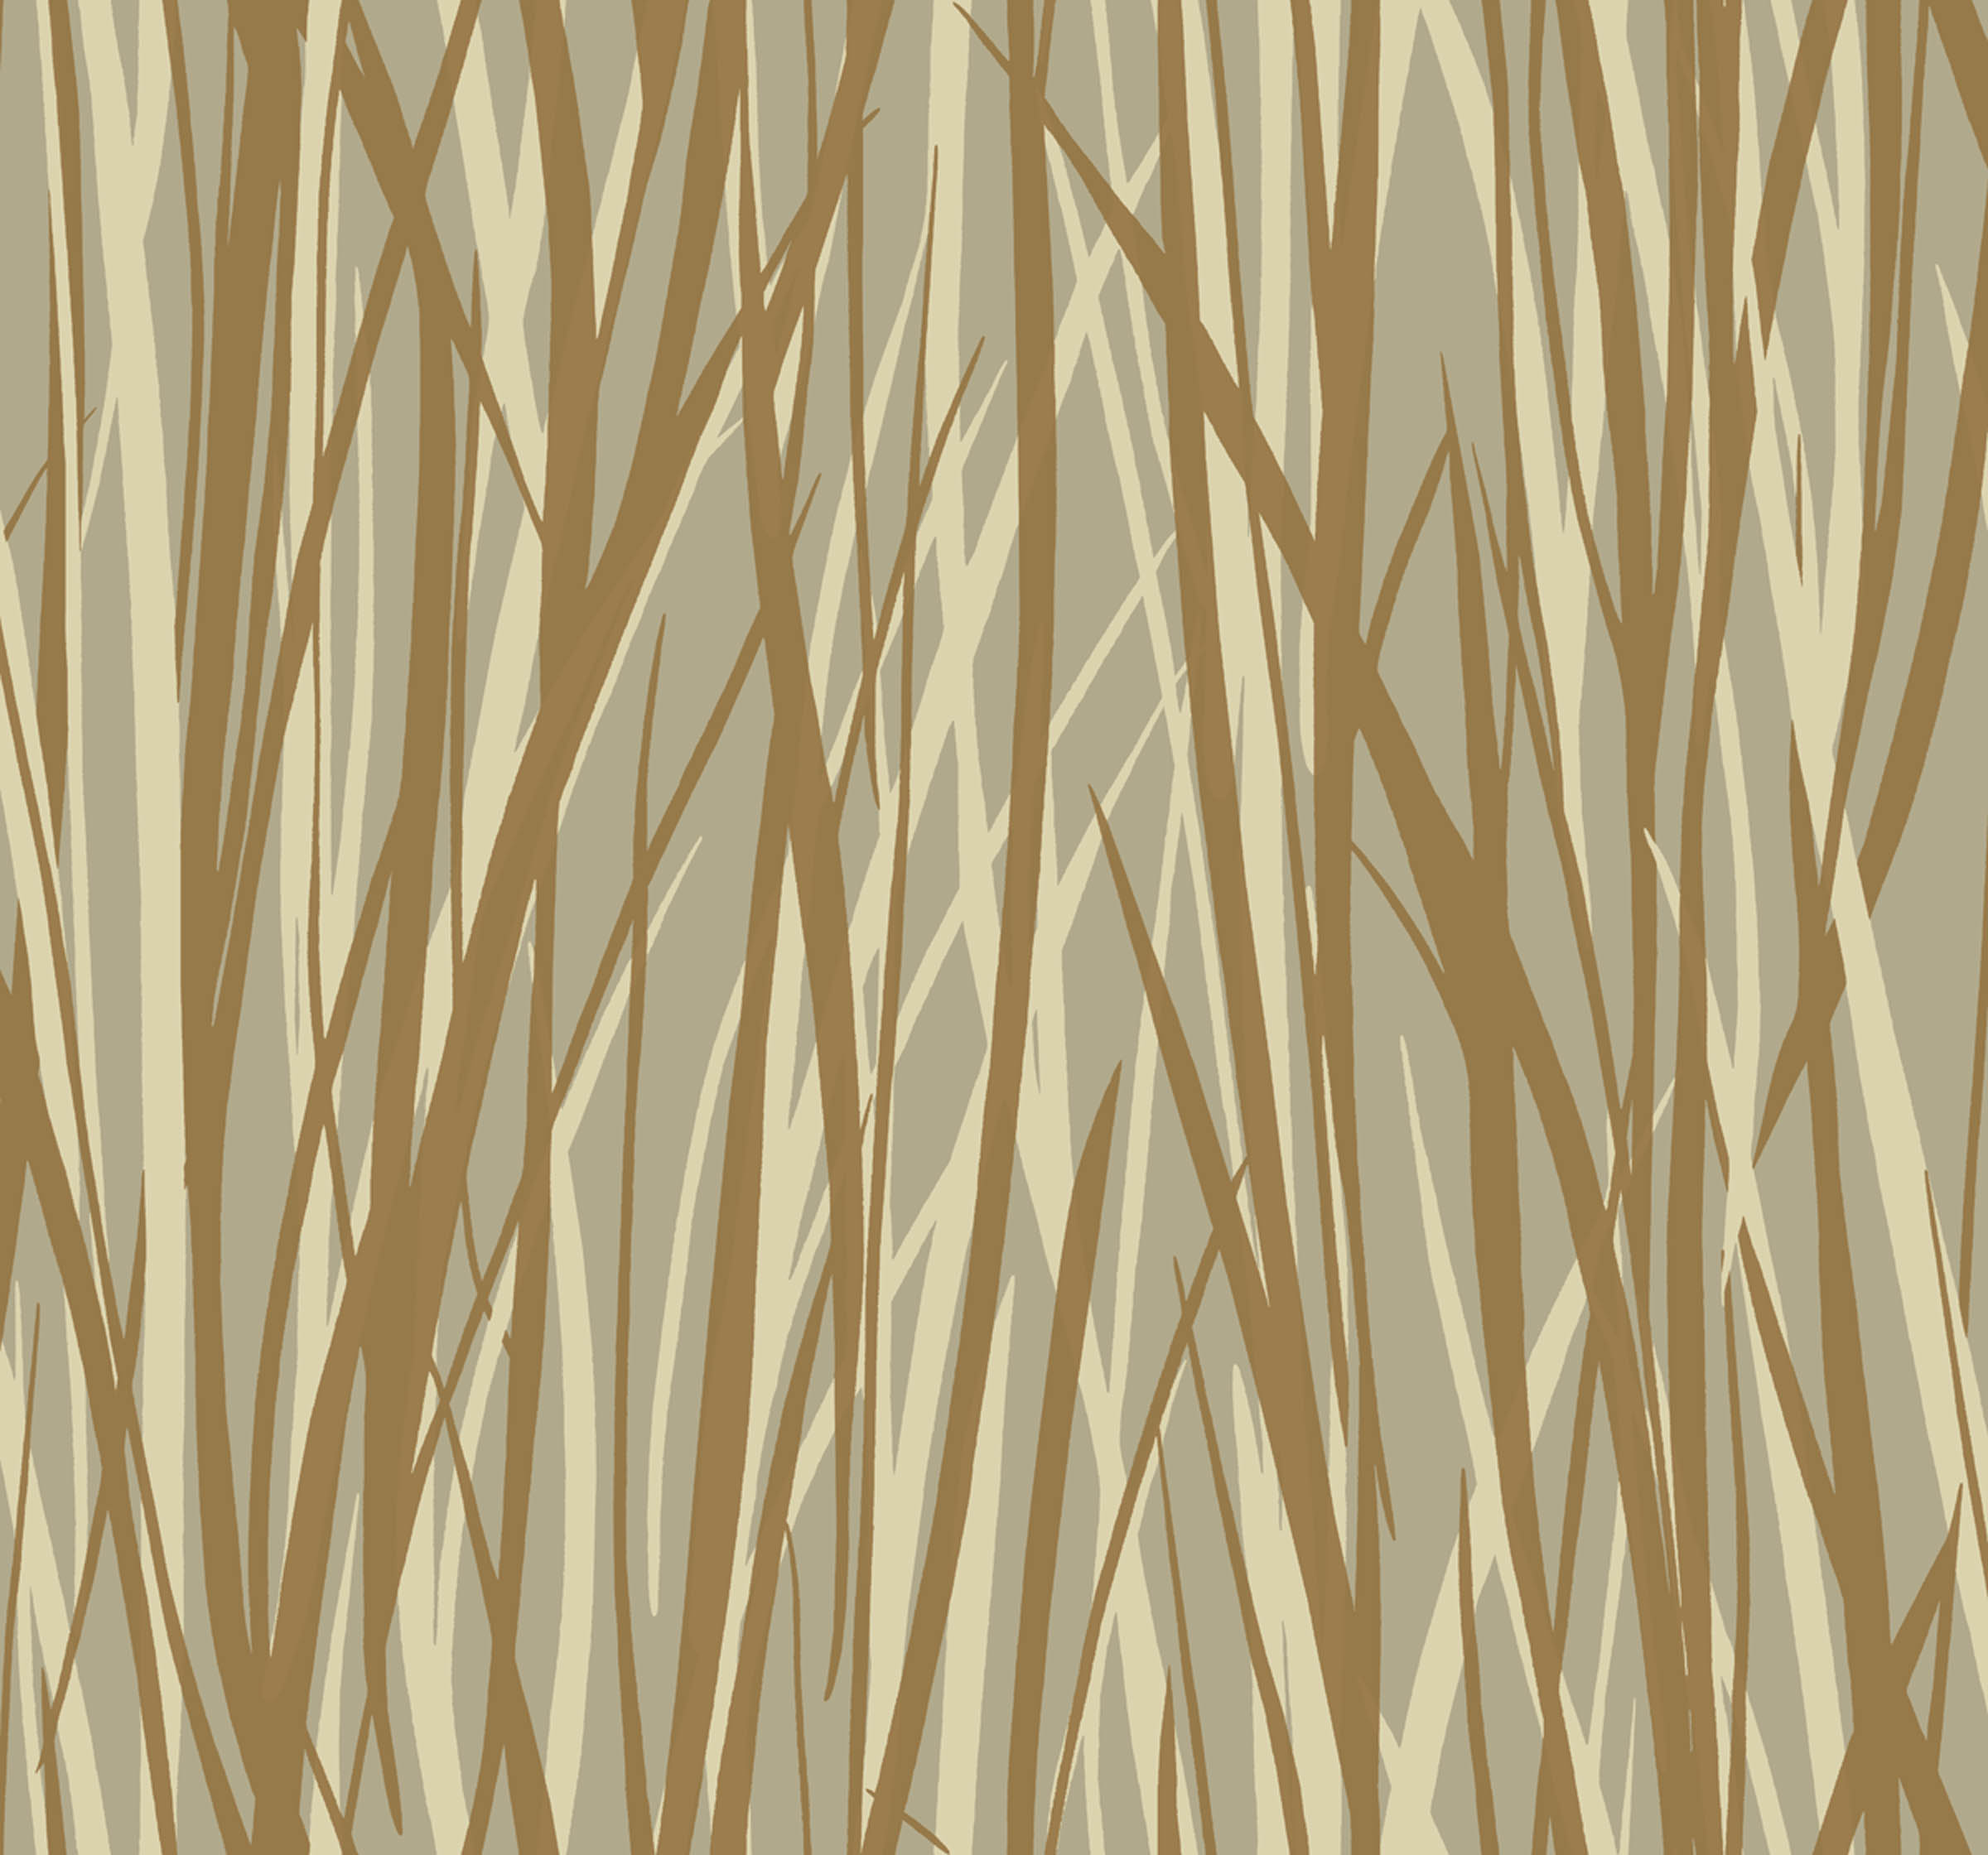 Studios Eco Chic wallpaper collection Grasses from Eco Chic 2400x2240